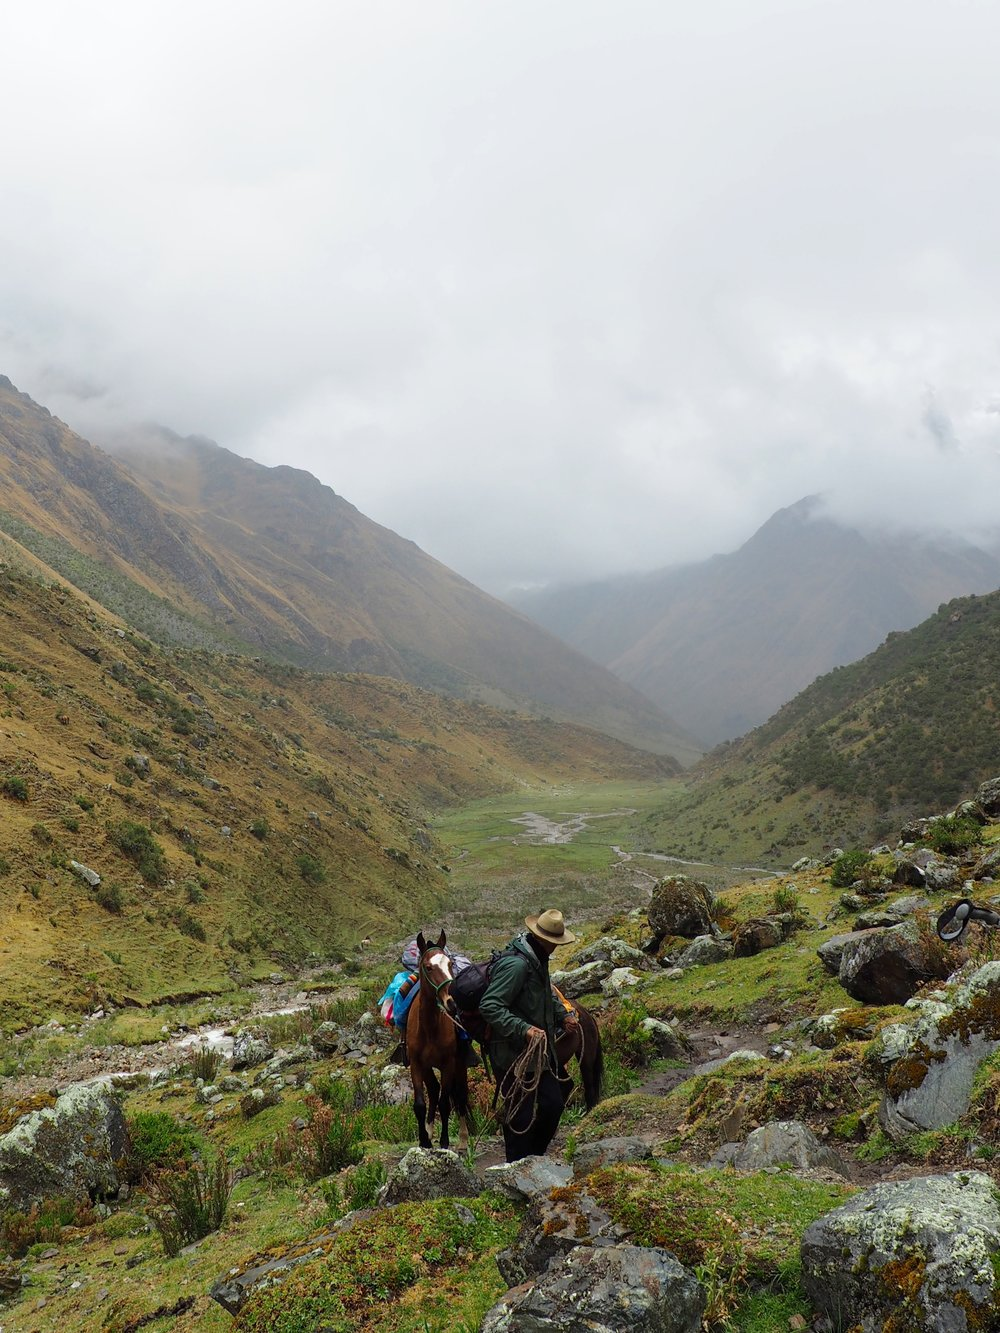 Horseman on the Salkantay Trek, Peru 2017